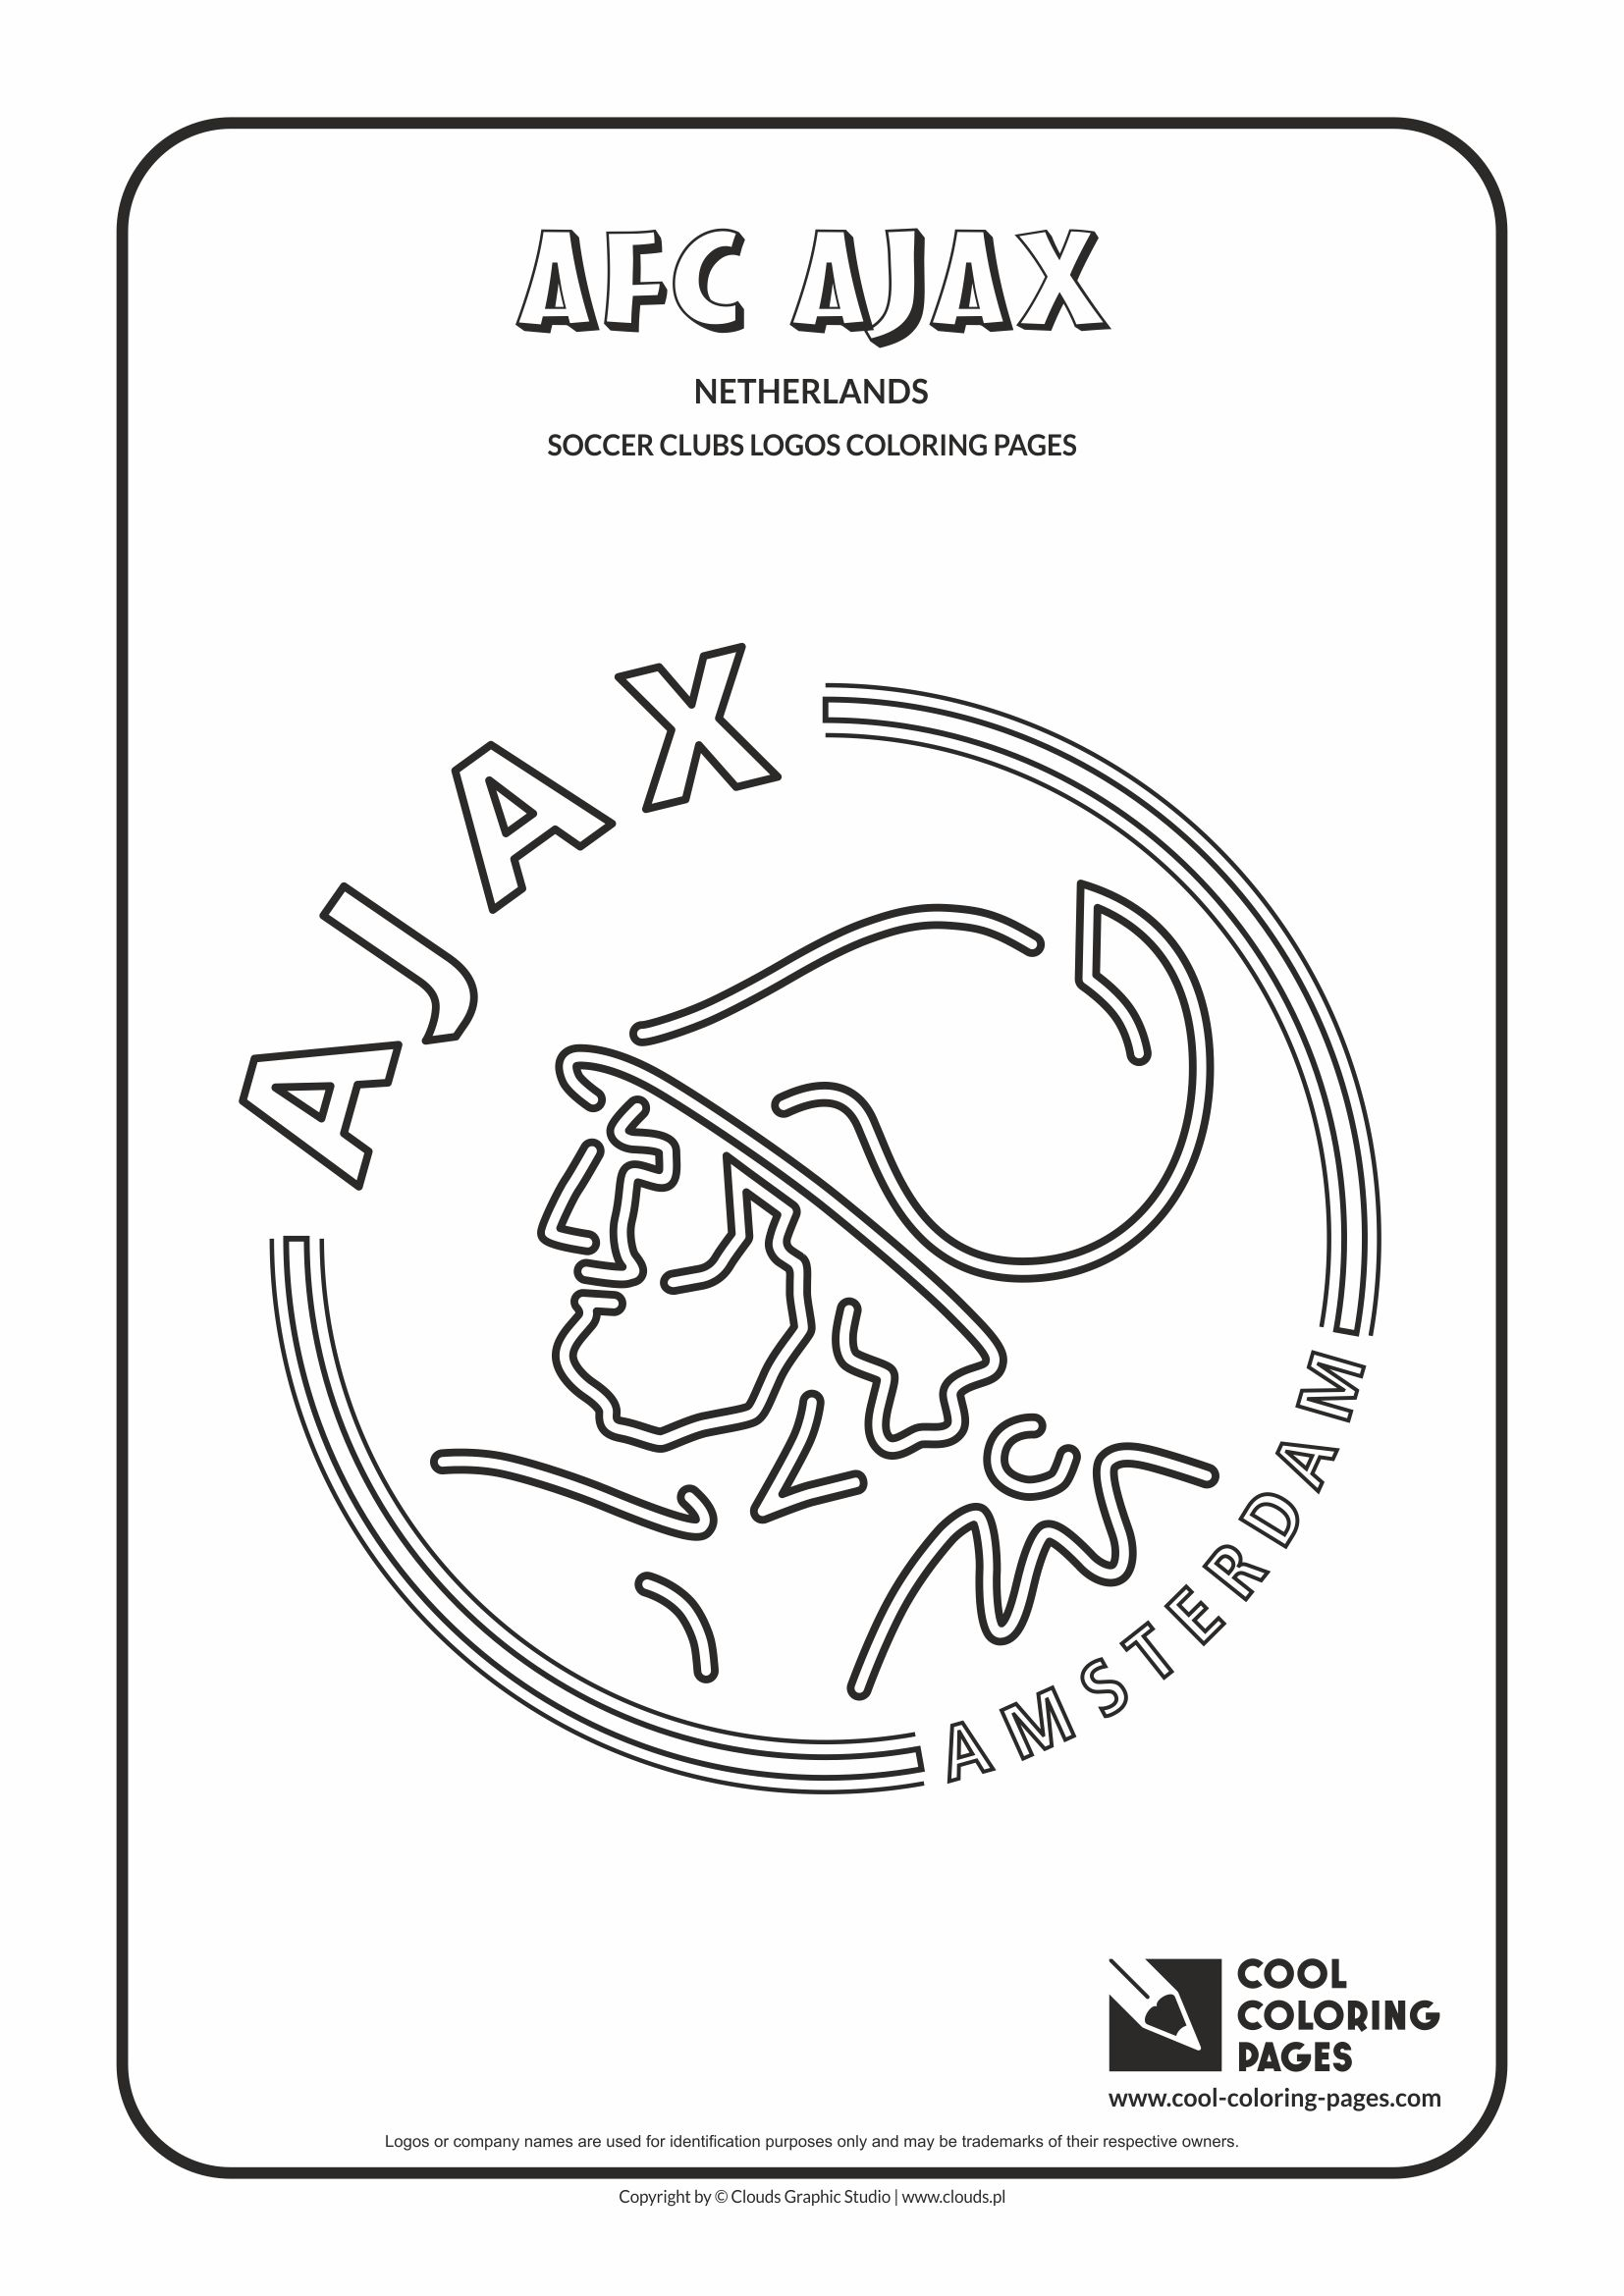 Cool Coloring Pages AFC Ajax Amsterdam logo coloring page ...